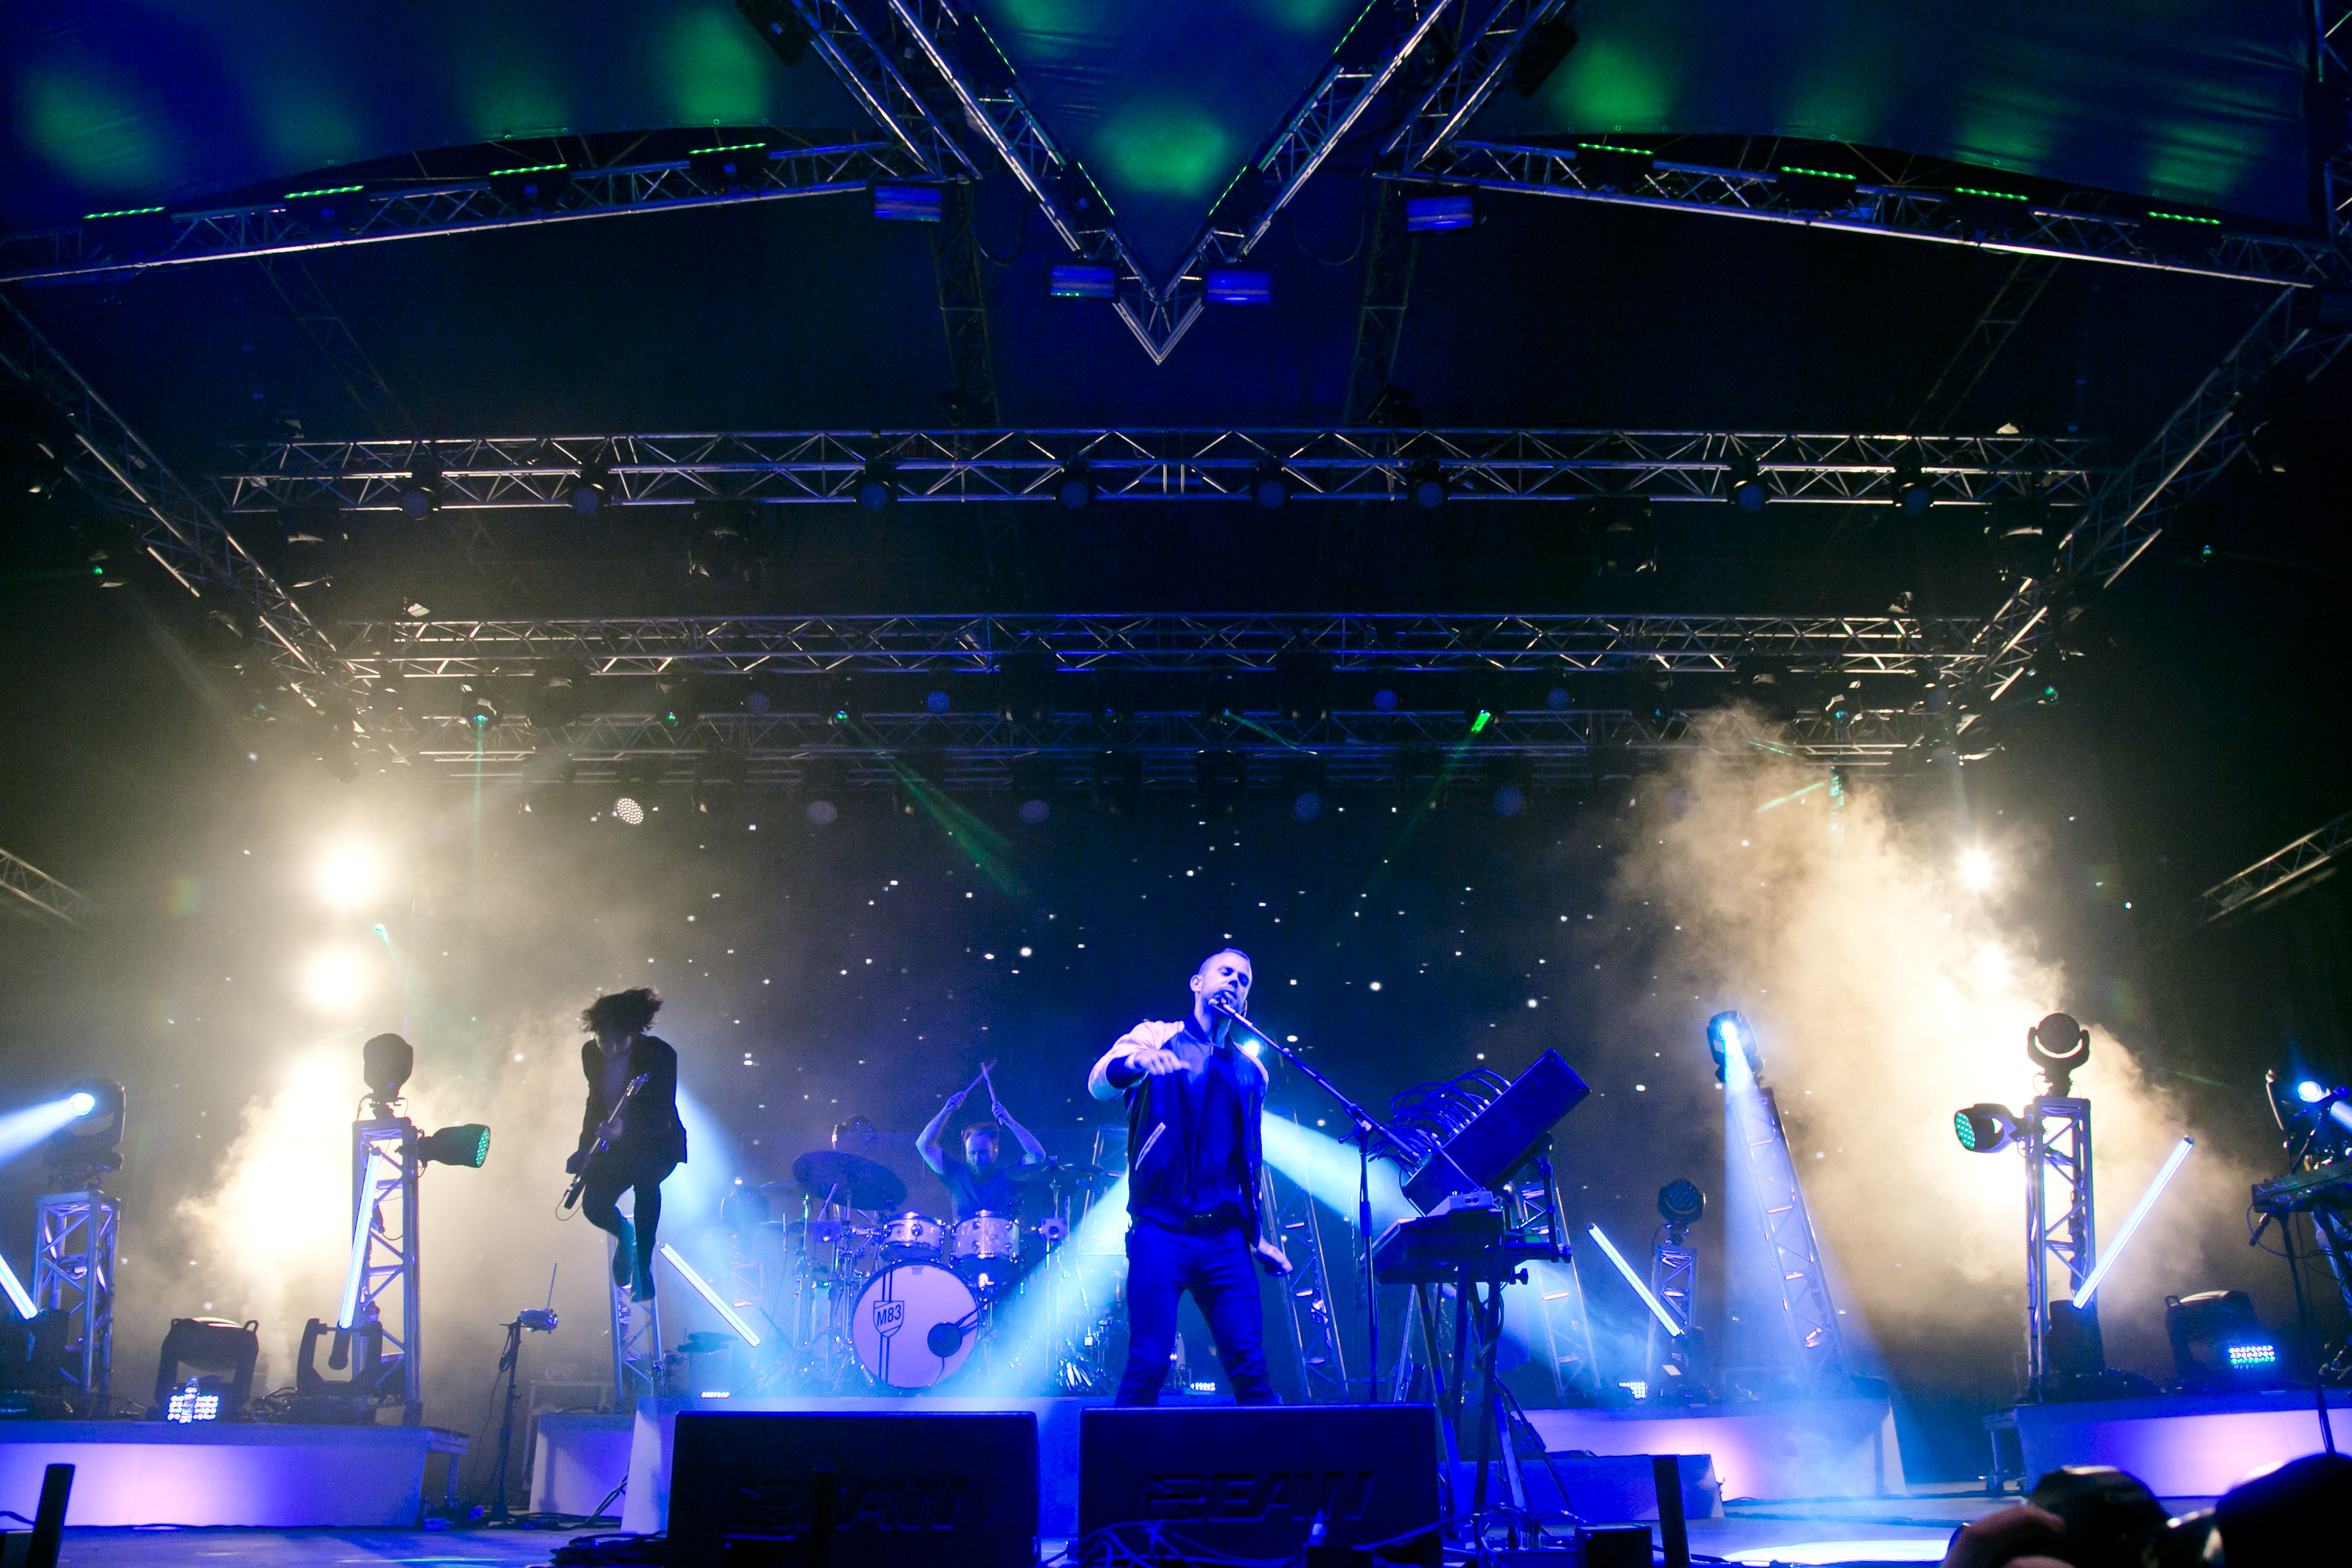 M83 at Sziget Festival, Budapest, Hungary - 15 August 2016